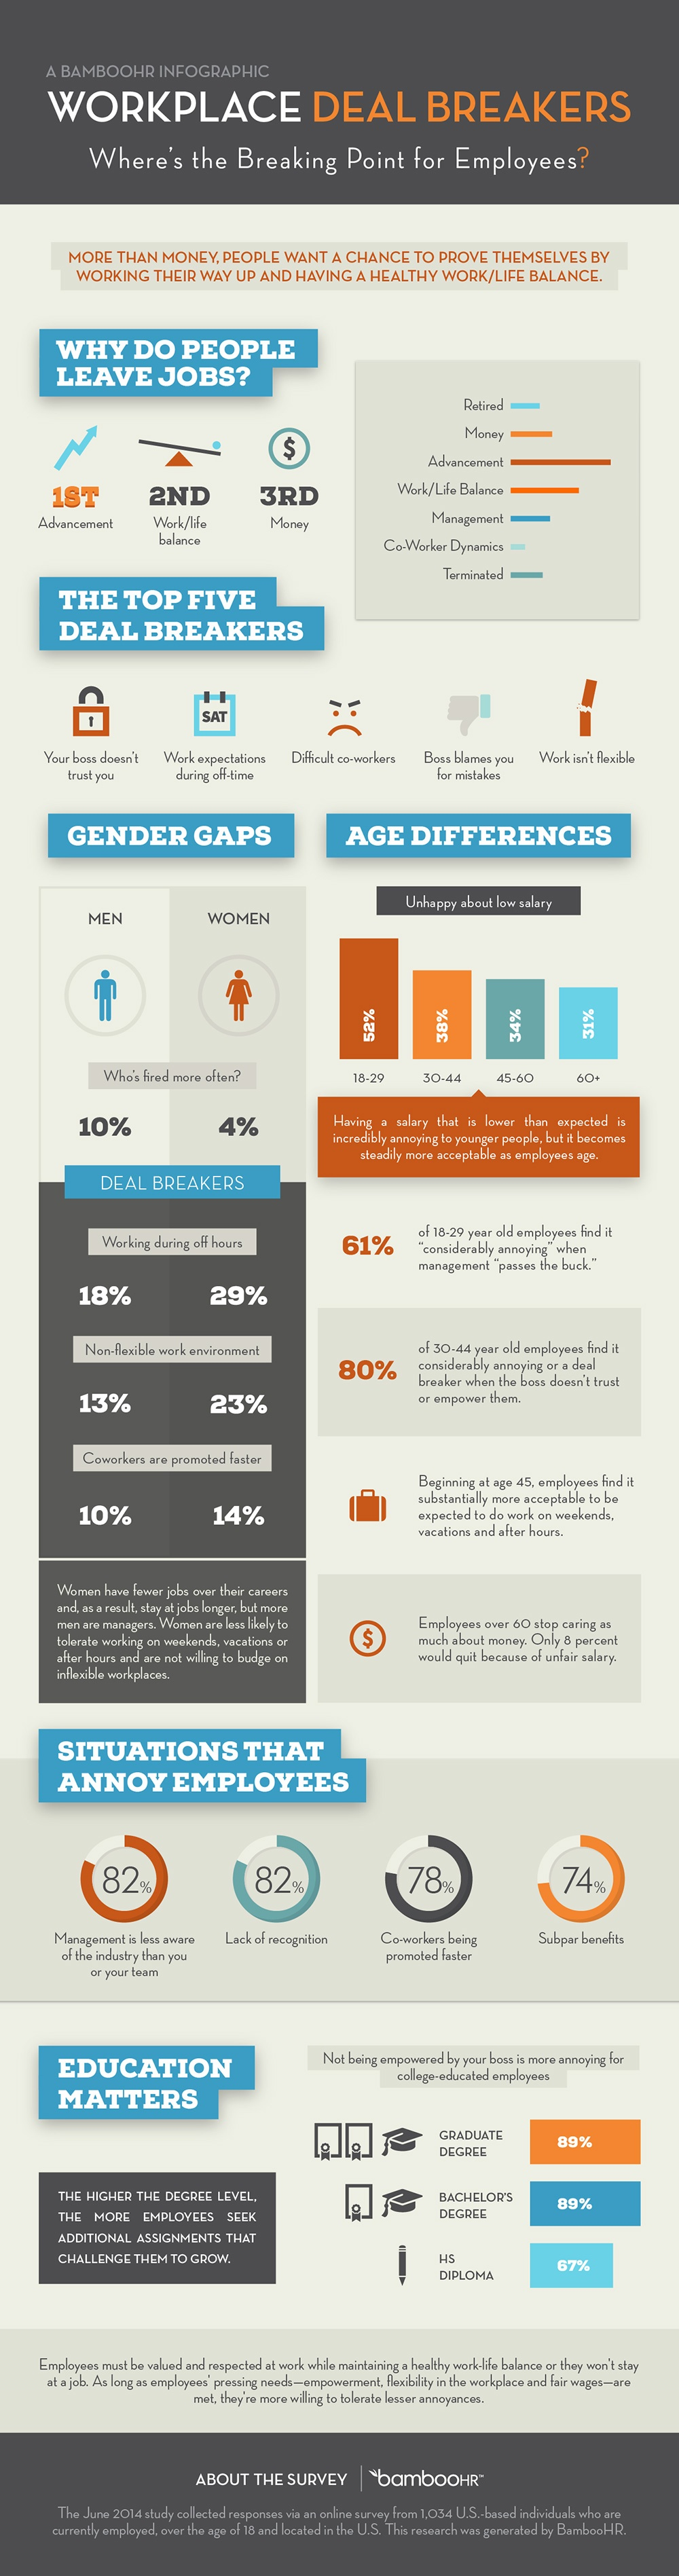 Workplace-Deal-Breakers-Infographic